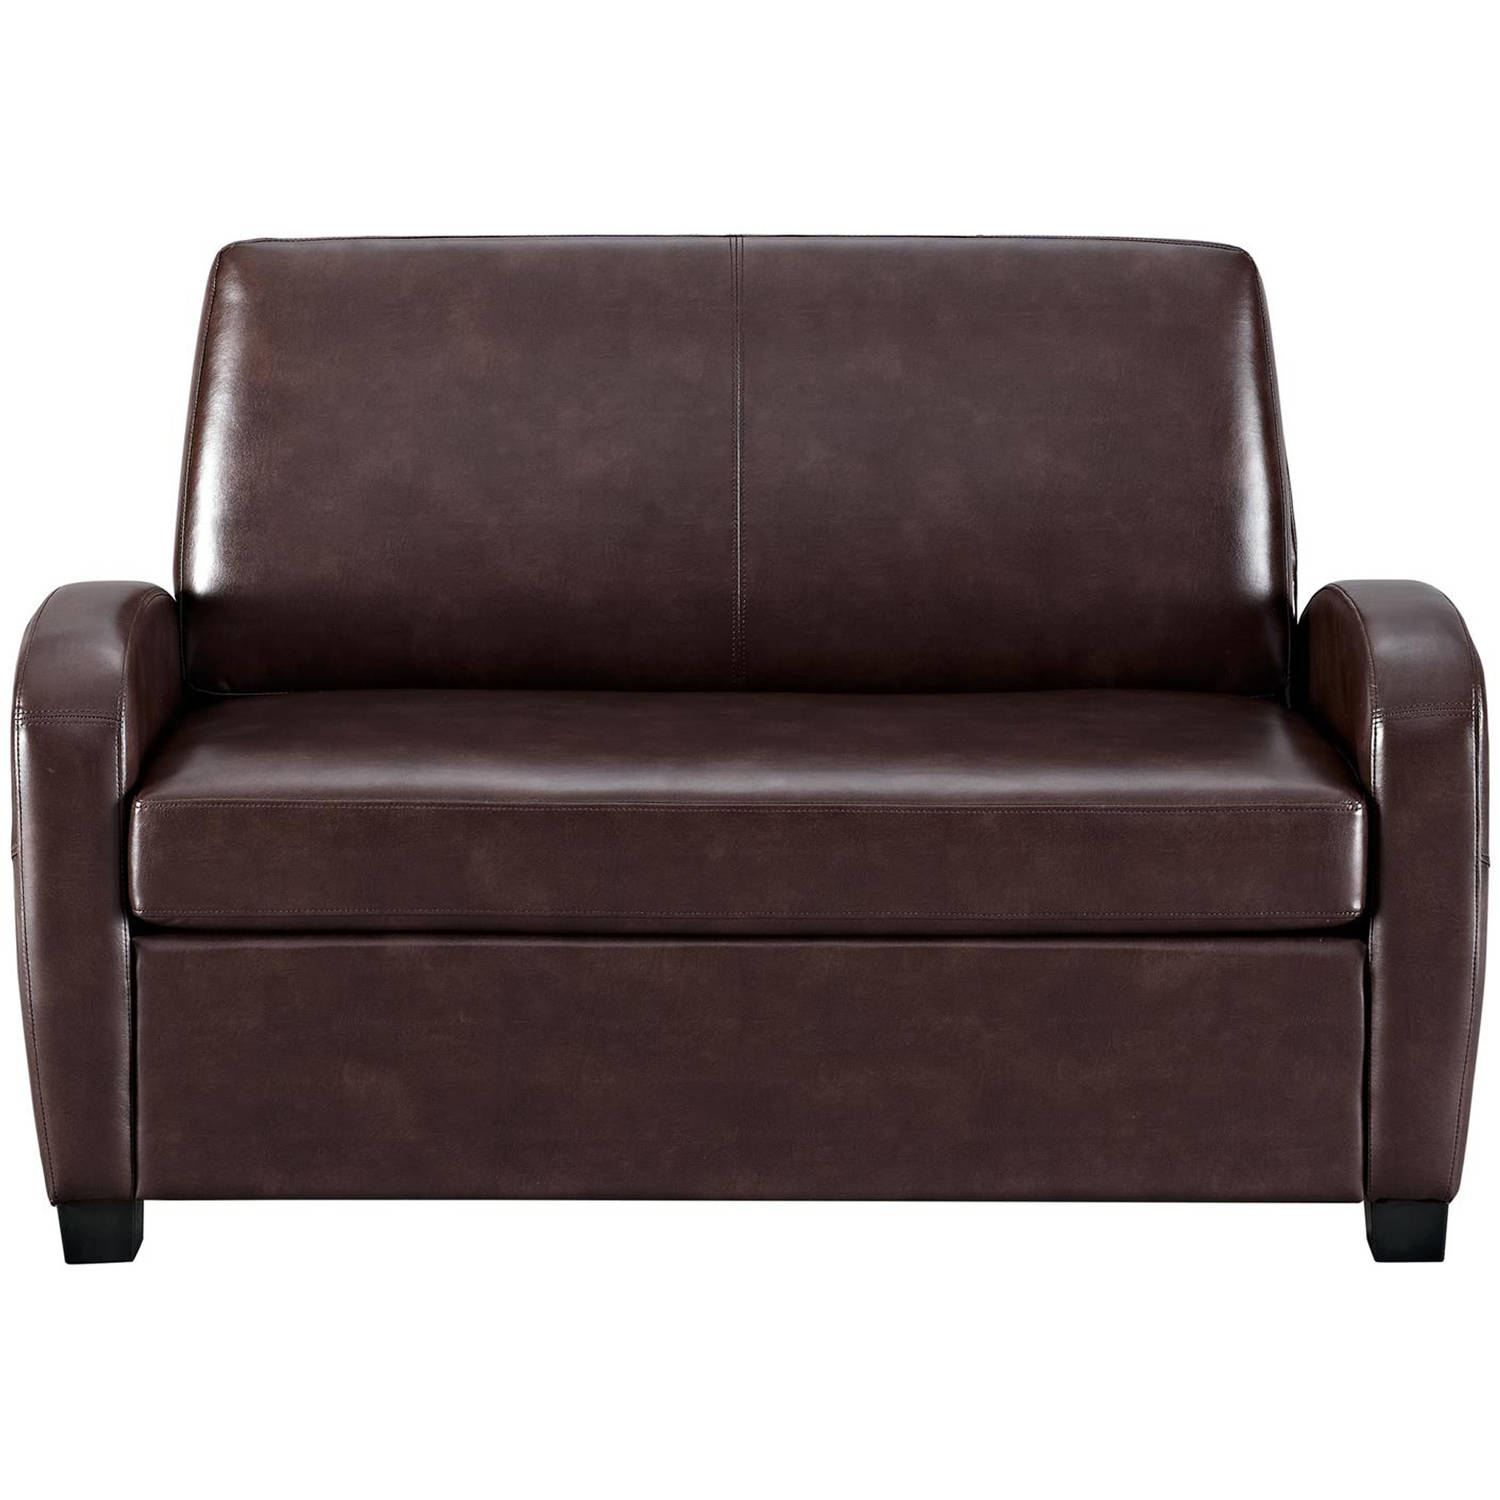 Leather Loveseat Leather Loveseat Sofa Bed Mainstays Sofa Sleeper Black